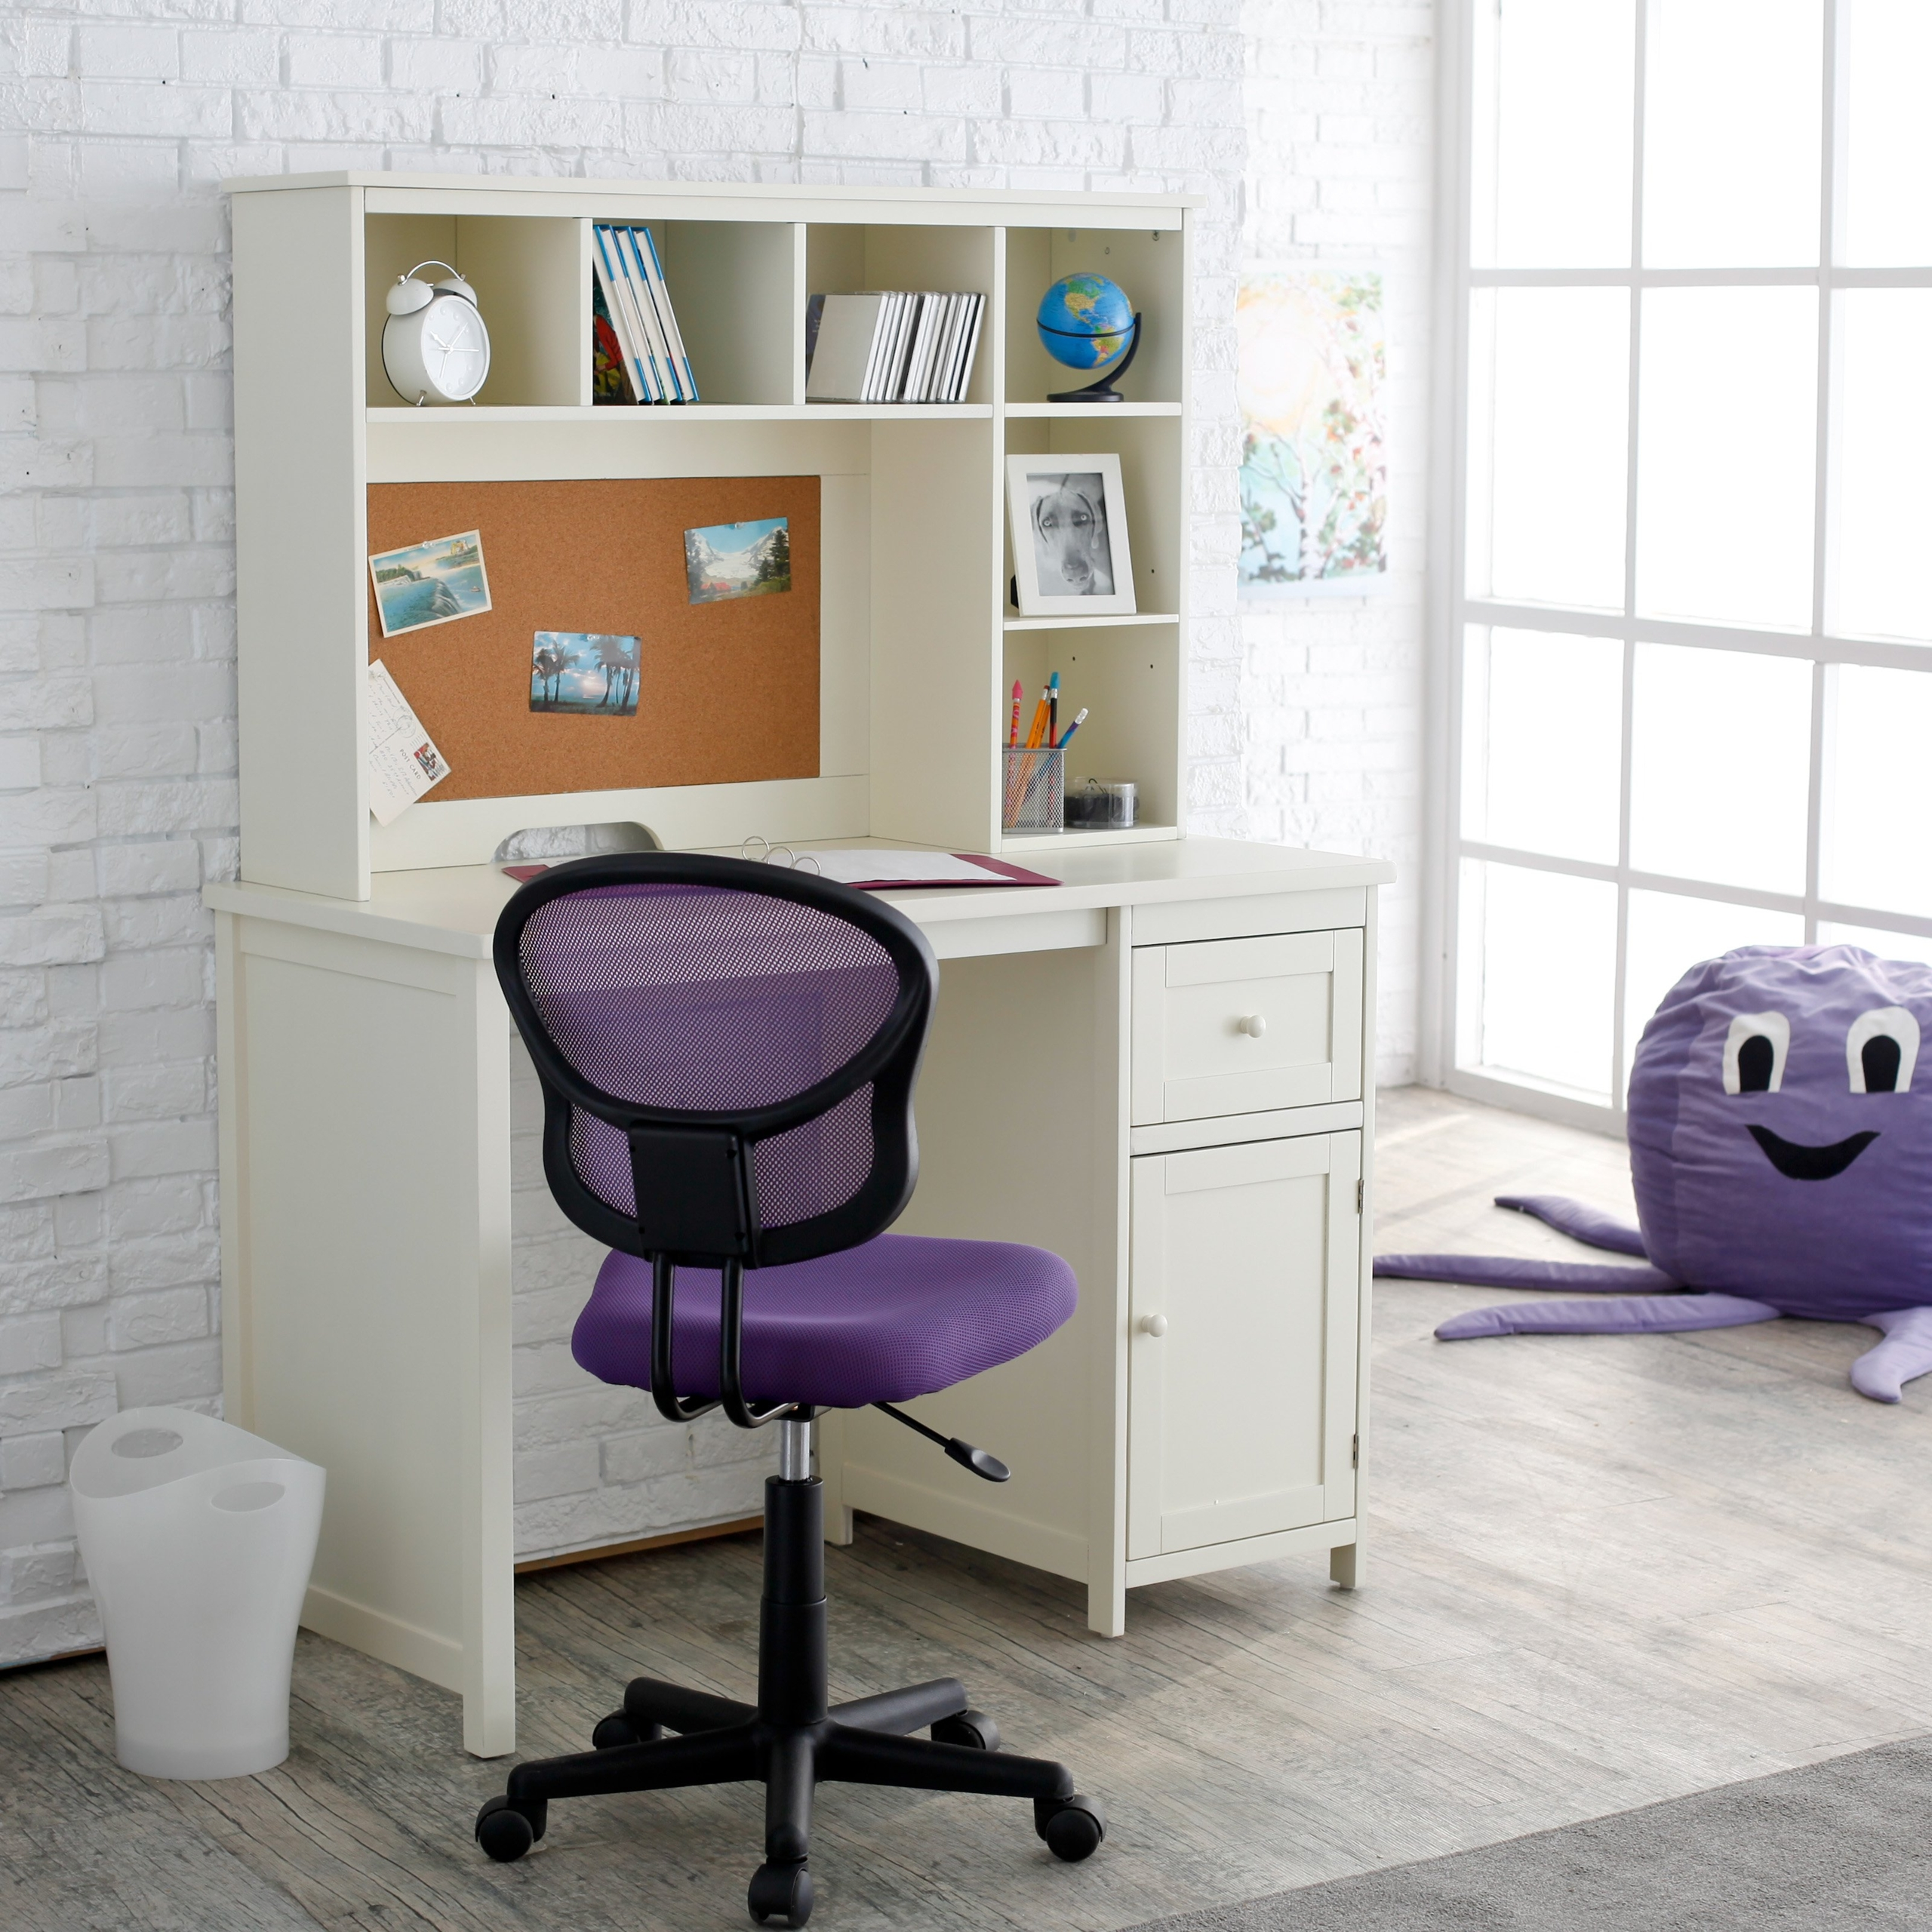 Desks for small rooms Shaped Small Desks For Rooms Bedroom Desk Spaces Abbafd Net Ideas Visual Hunt Small Desks For Bedrooms Visual Hunt